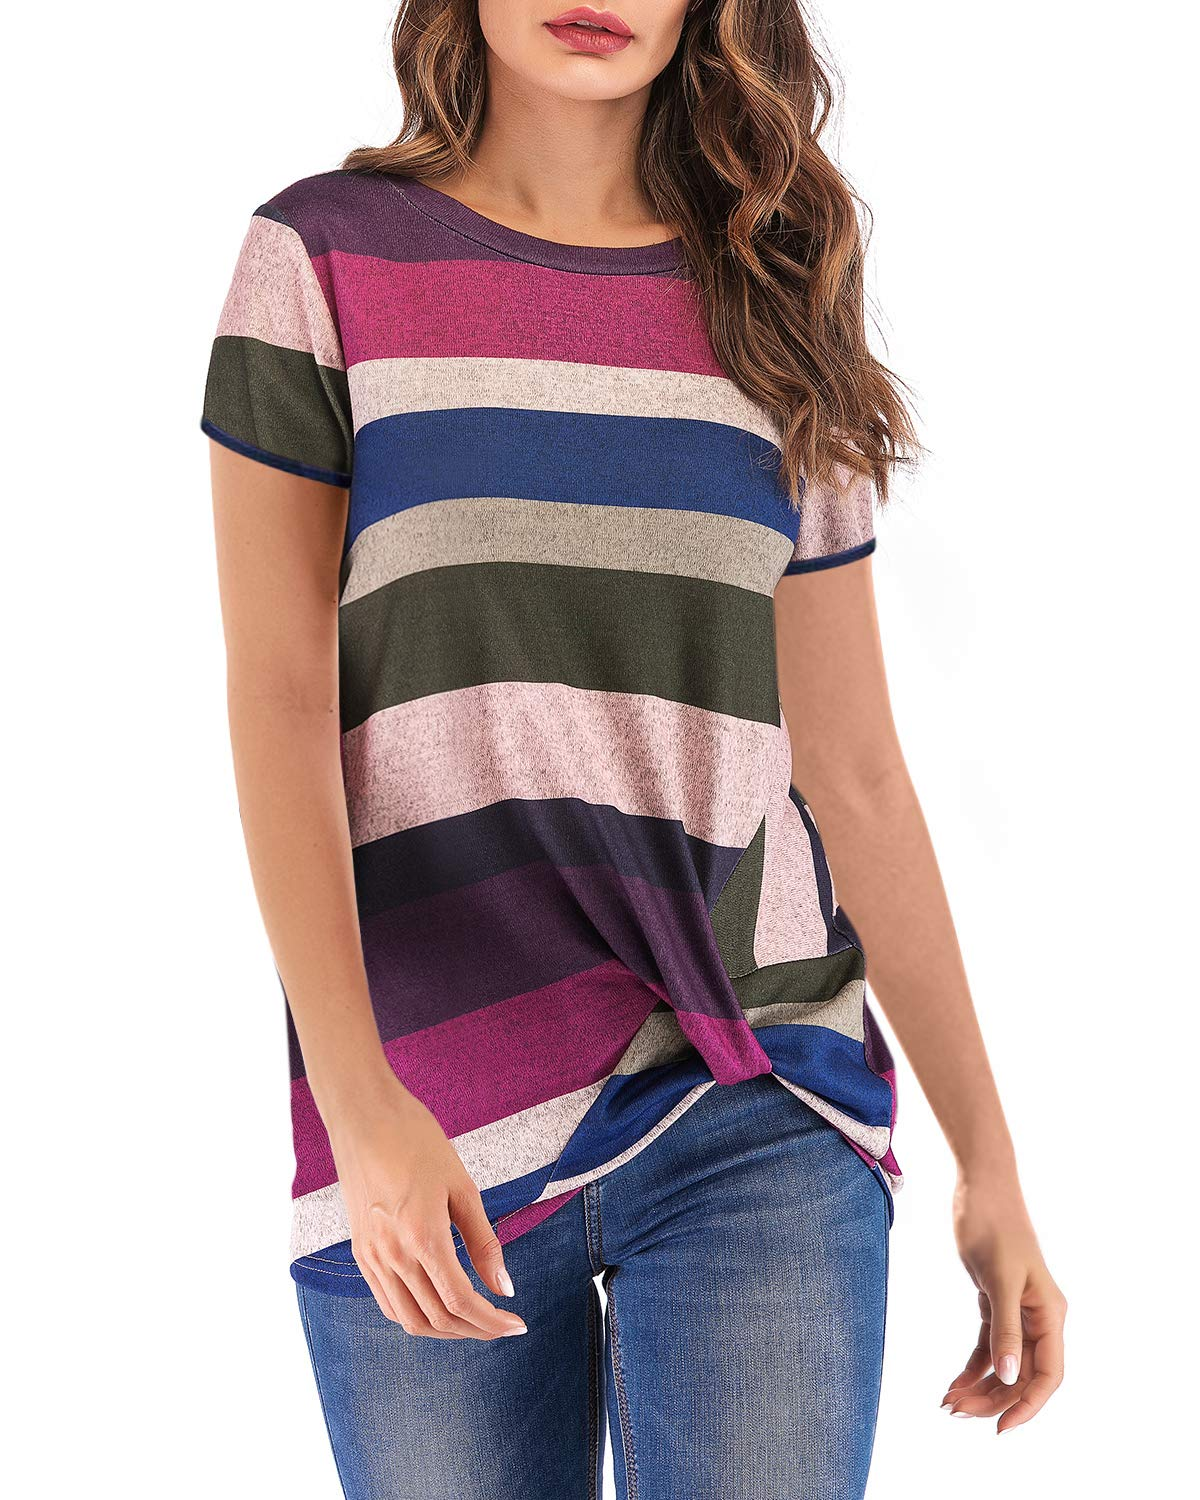 Eanklosco Women's Tops Striped T-Shirts Front Knot Tunic Casual Blouses Short Sleeve (L/UK 12, Dark Purple)